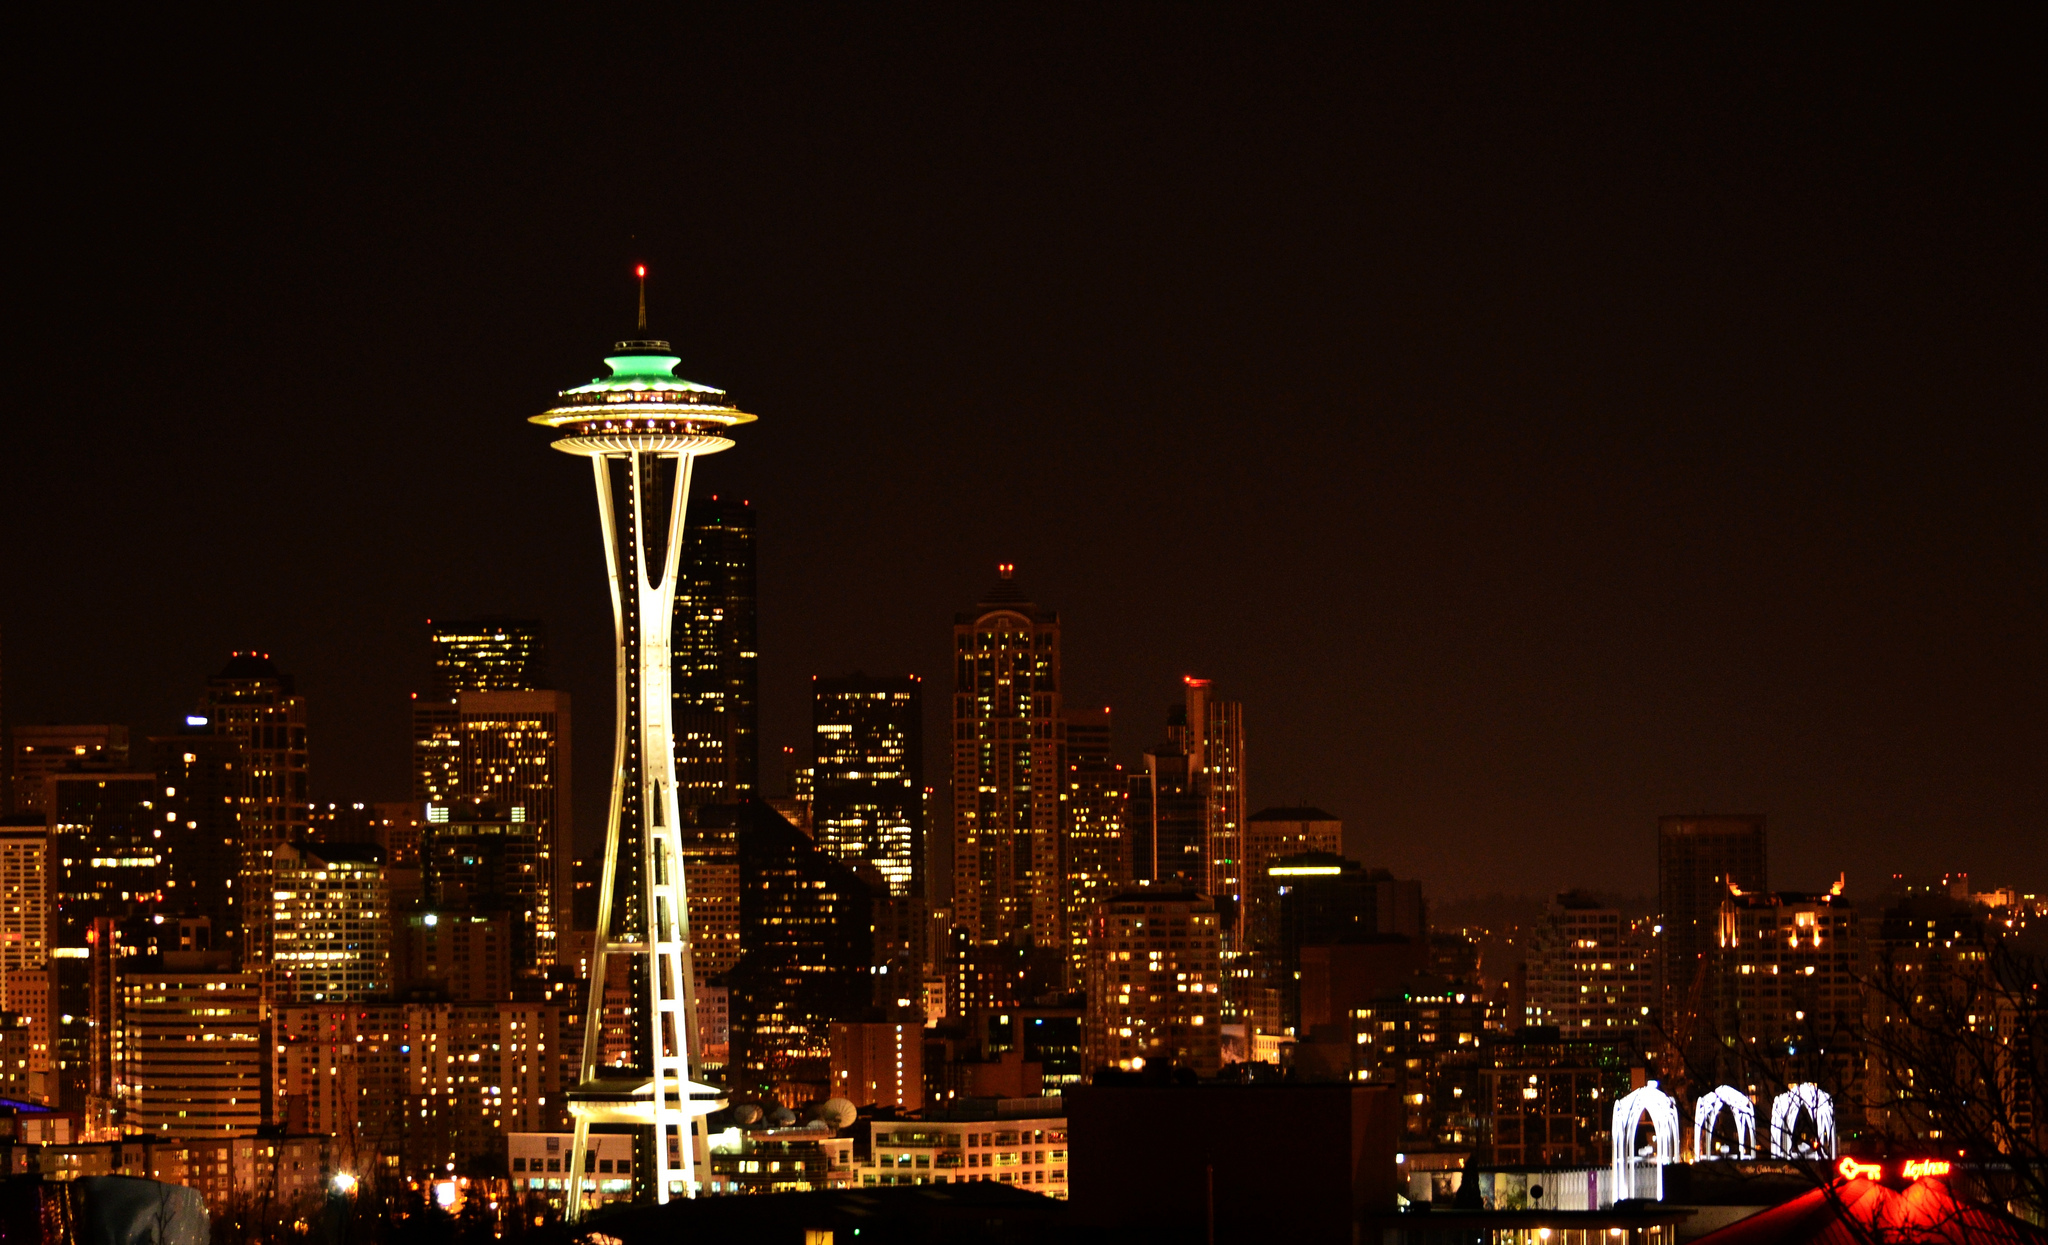 Seattle night scene from Kerry Park Flickr user: Anupam_ts CC 2.0